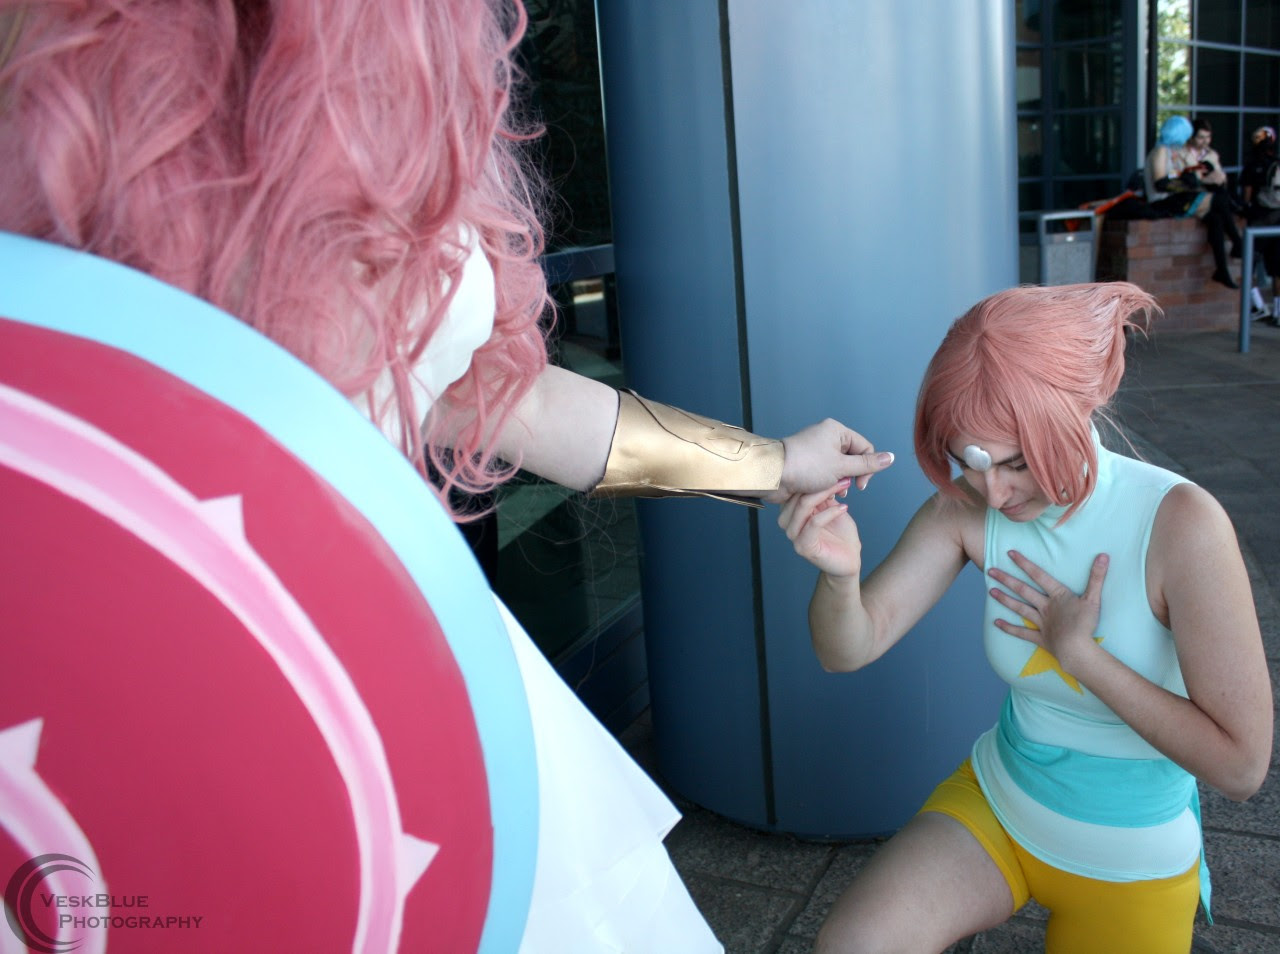 Steven Universe - AWA 2016 Pearl - Tumblr/Facebook Rose - Facebook Photographer - Tumblr/Facebook